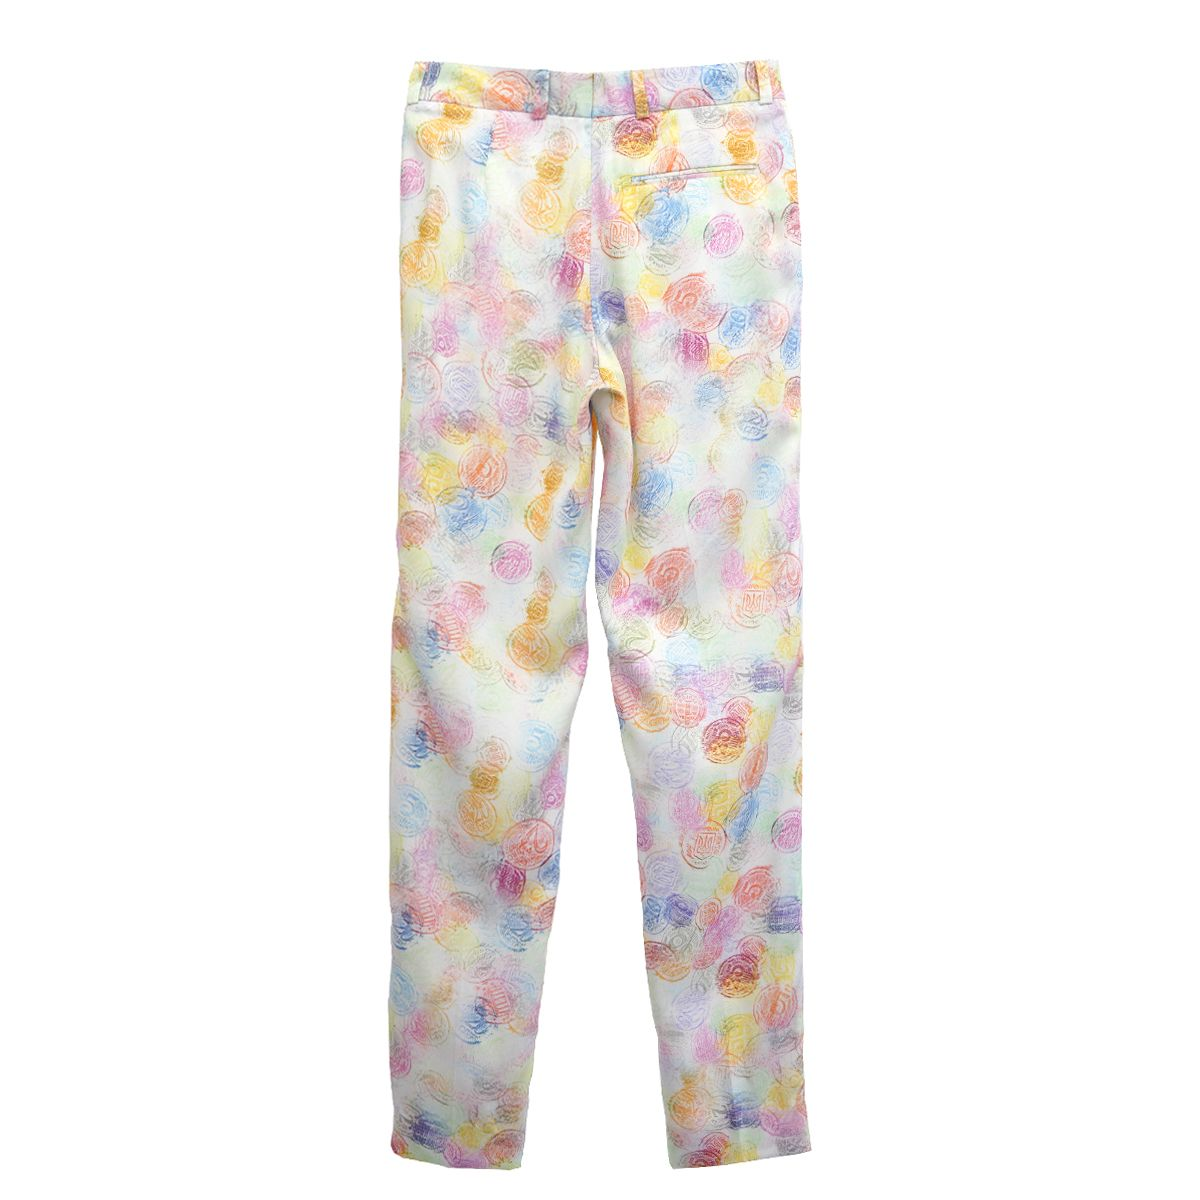 ANTON BELINSKIY PANTS / COLORFUL PRINT